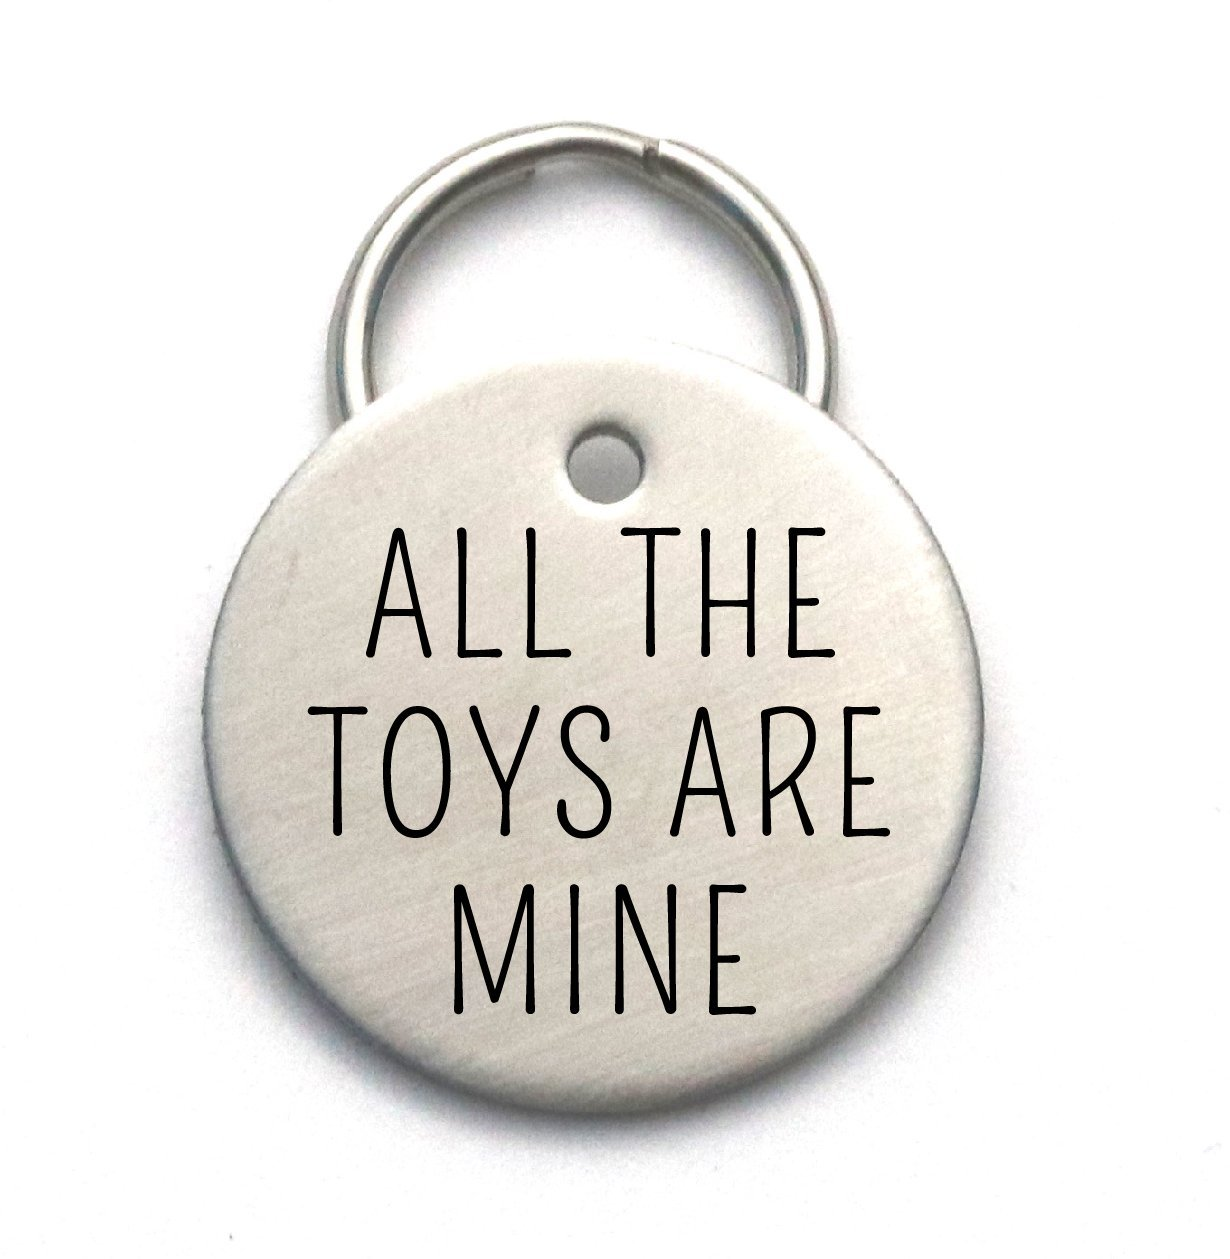 Funny Dog Tag - Cute Metal Pet ID - Strong, Engraved, Customized - All The Toys Are Mine by Critter Bling